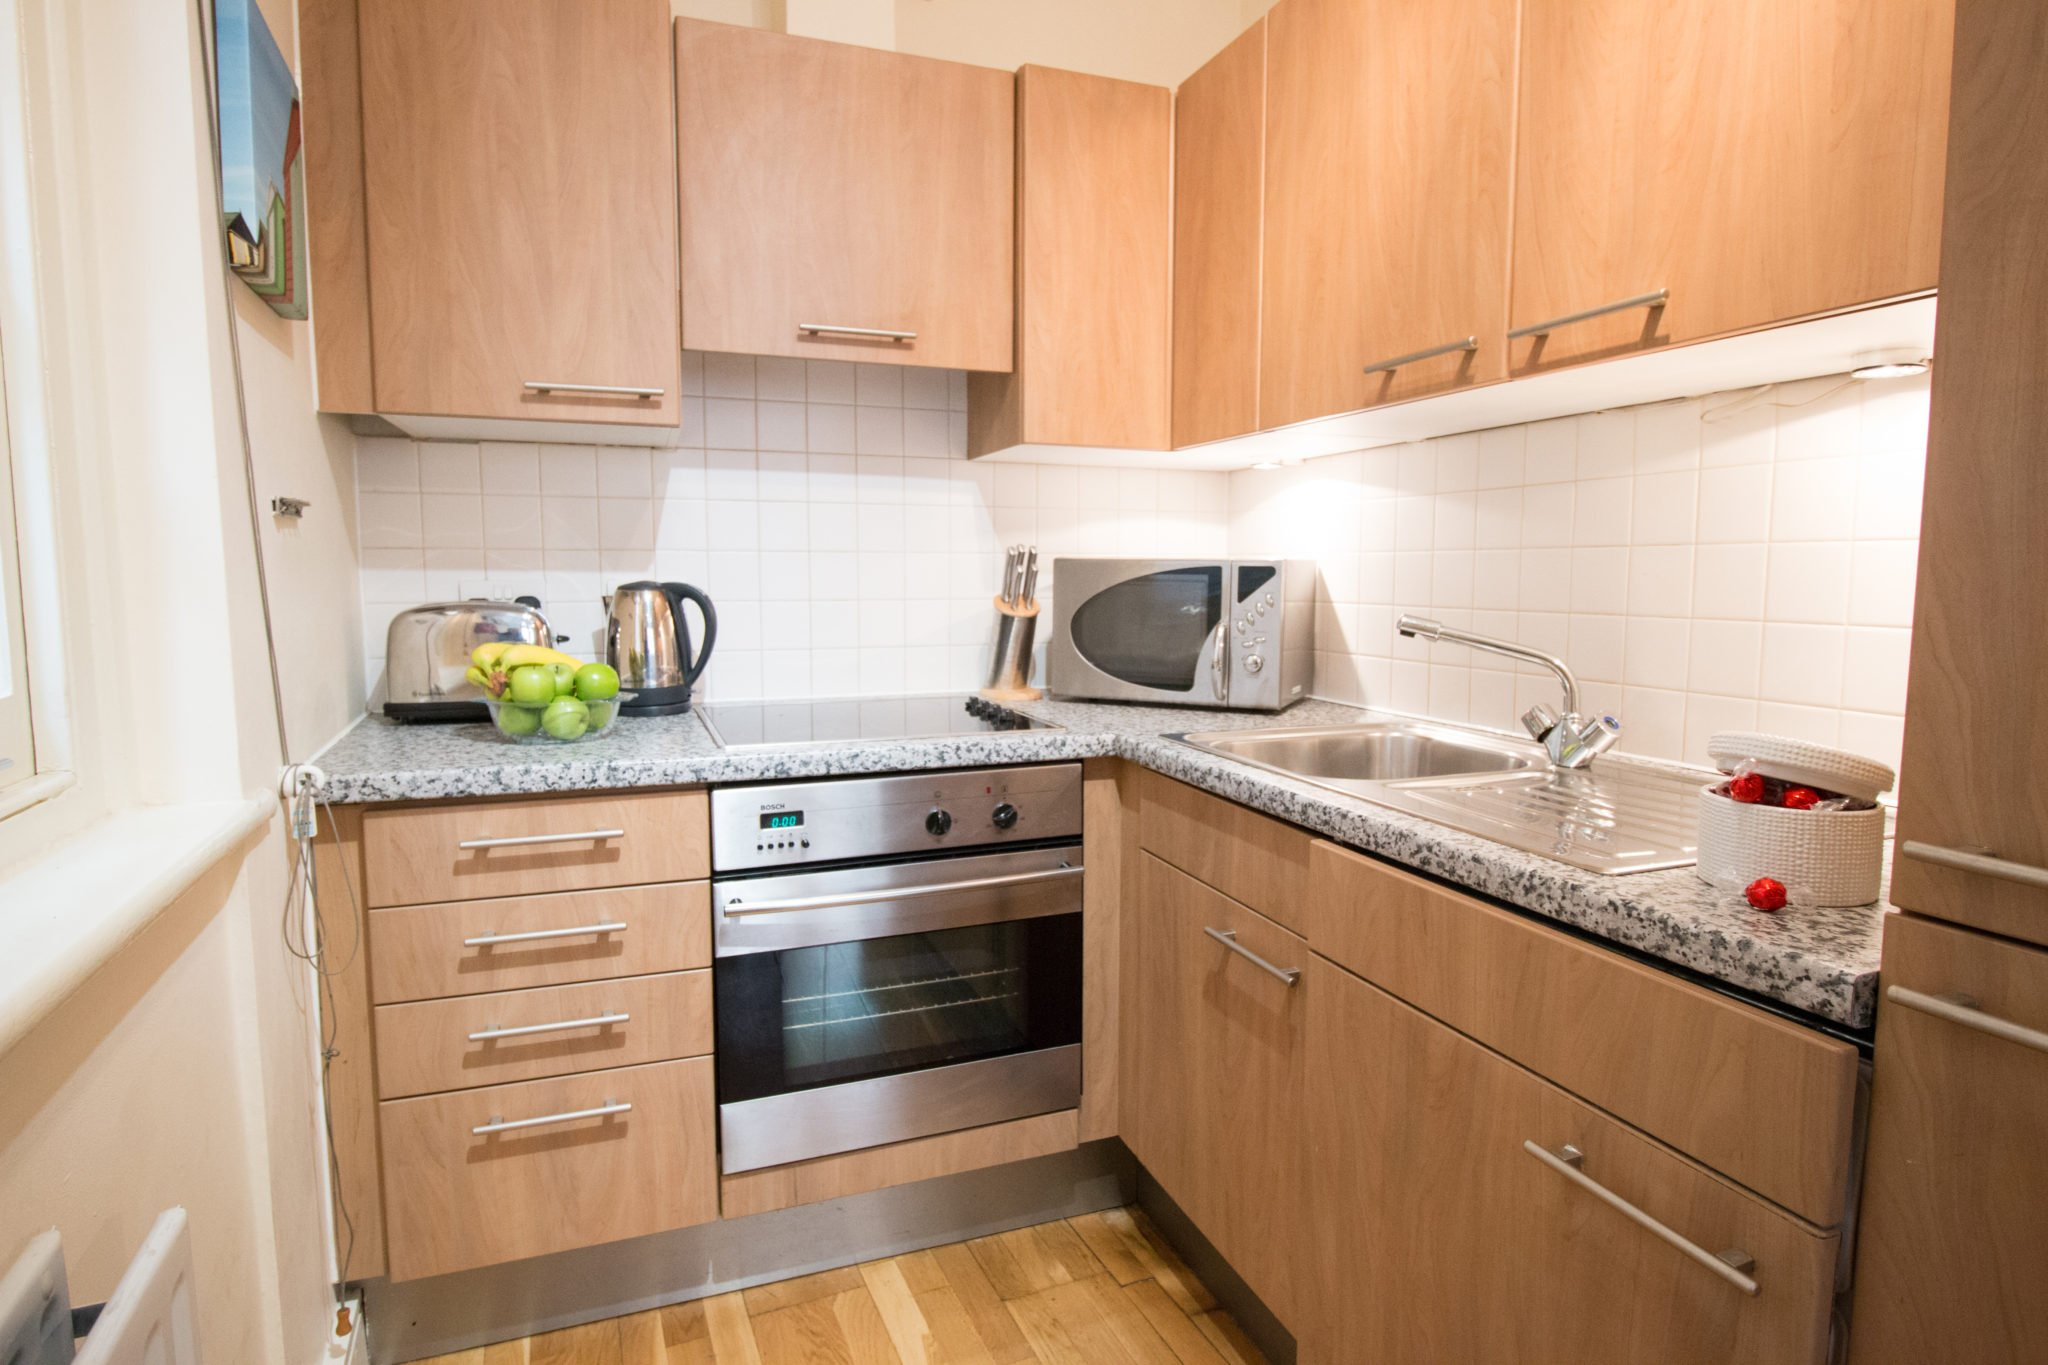 Blackfriars-Accommodation-London---Blackfriars-Serviced-Apartments-London---The-Best-Short-Stay-Accommodation-London-|Cathedral-Court--Book-Now-|-Urban-Stay